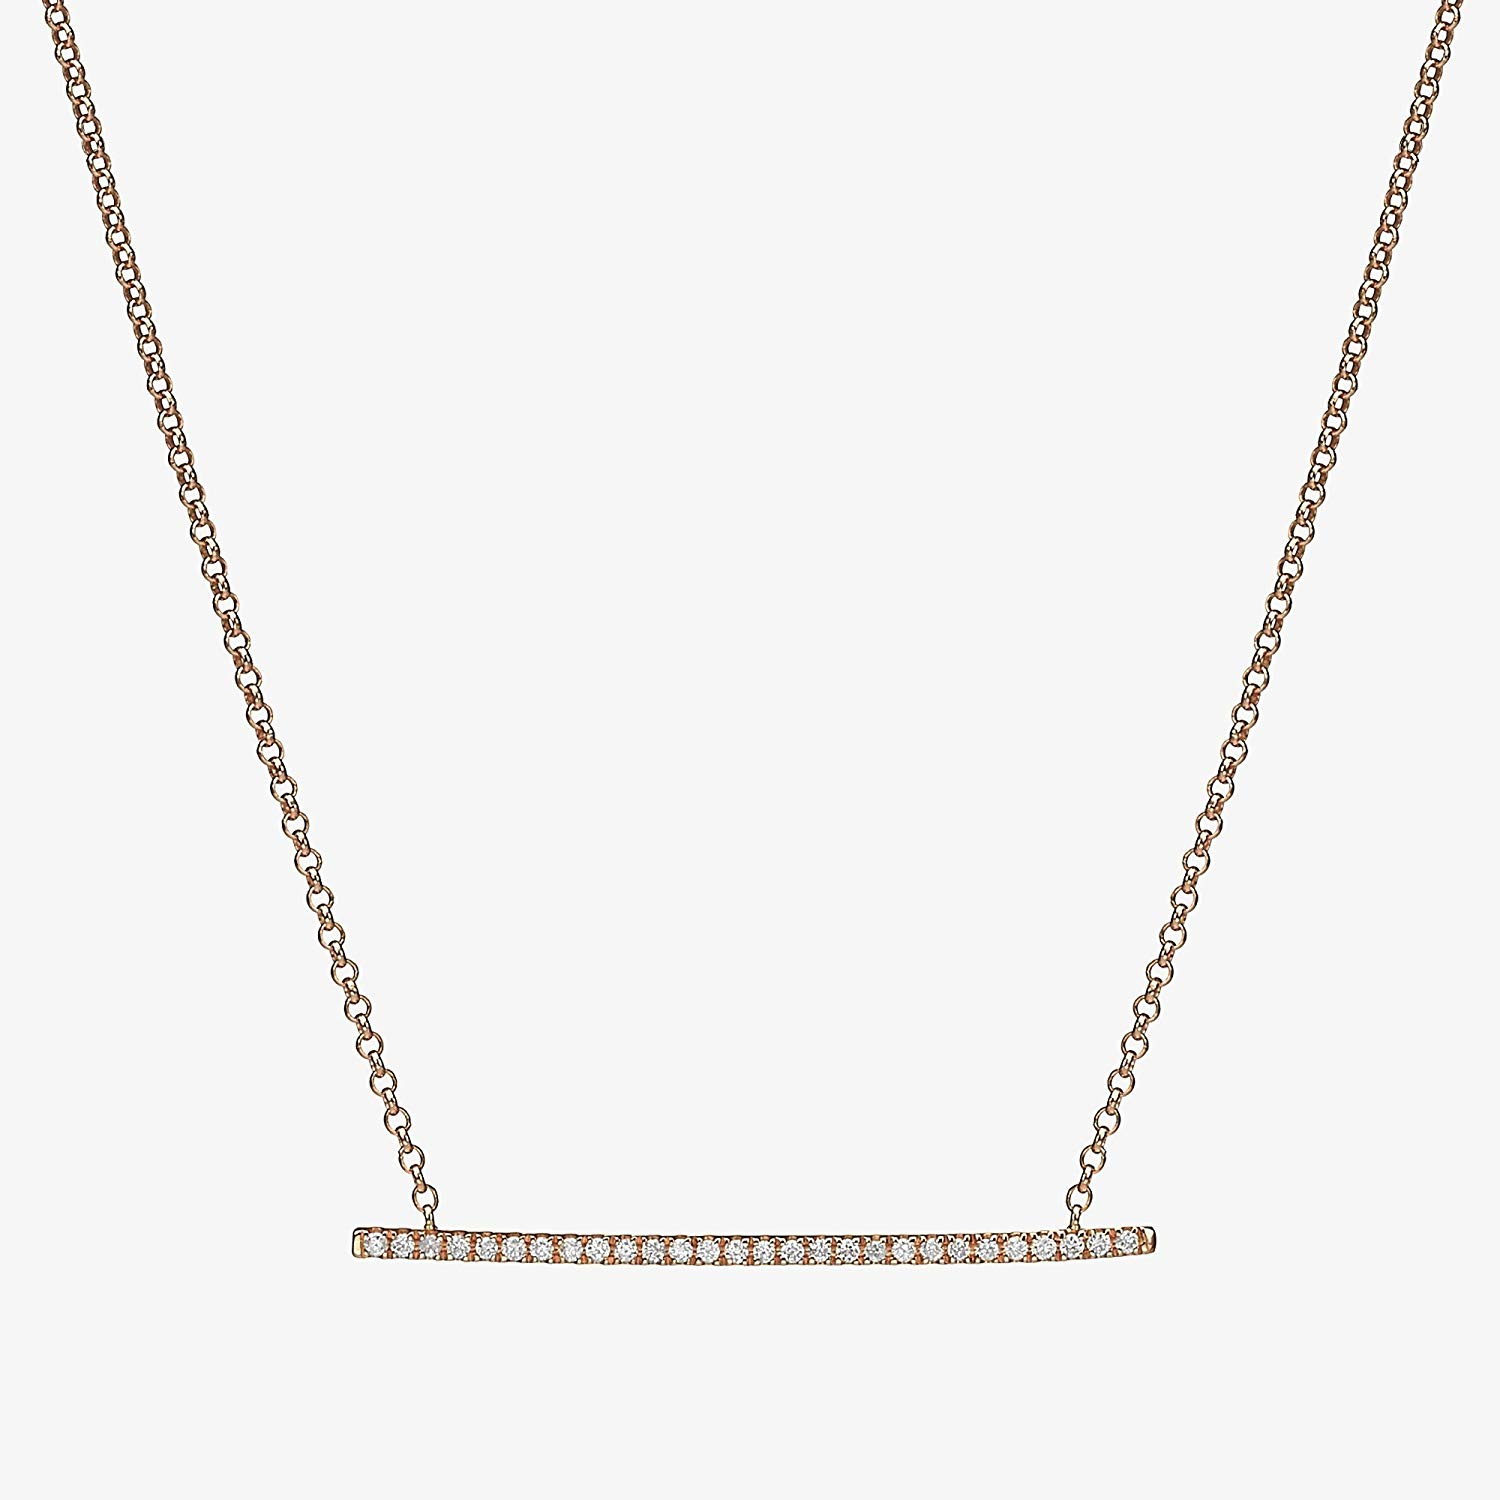 8074a88dee5706 Get Quotations · Diamond Bar Necklace, Diamond Layering Necklace, 14k Solid Rose  Gold Diamond Bar Necklace with